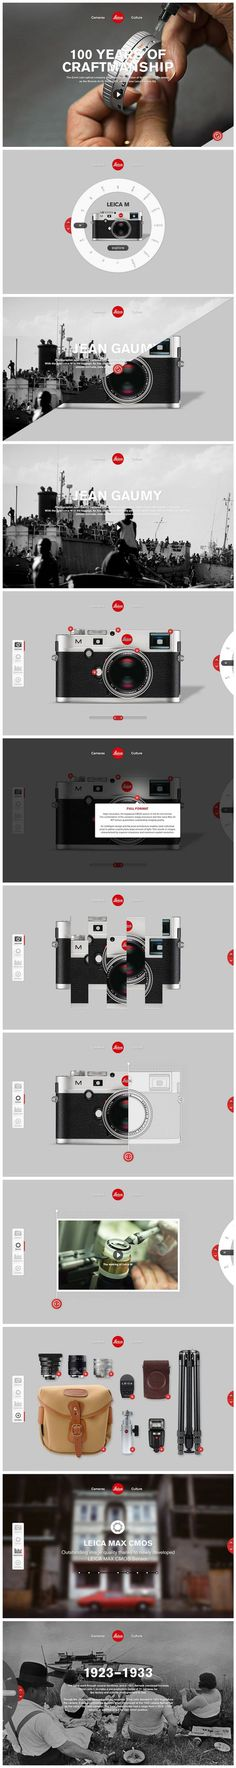 Leica #website #digital #leica #camera